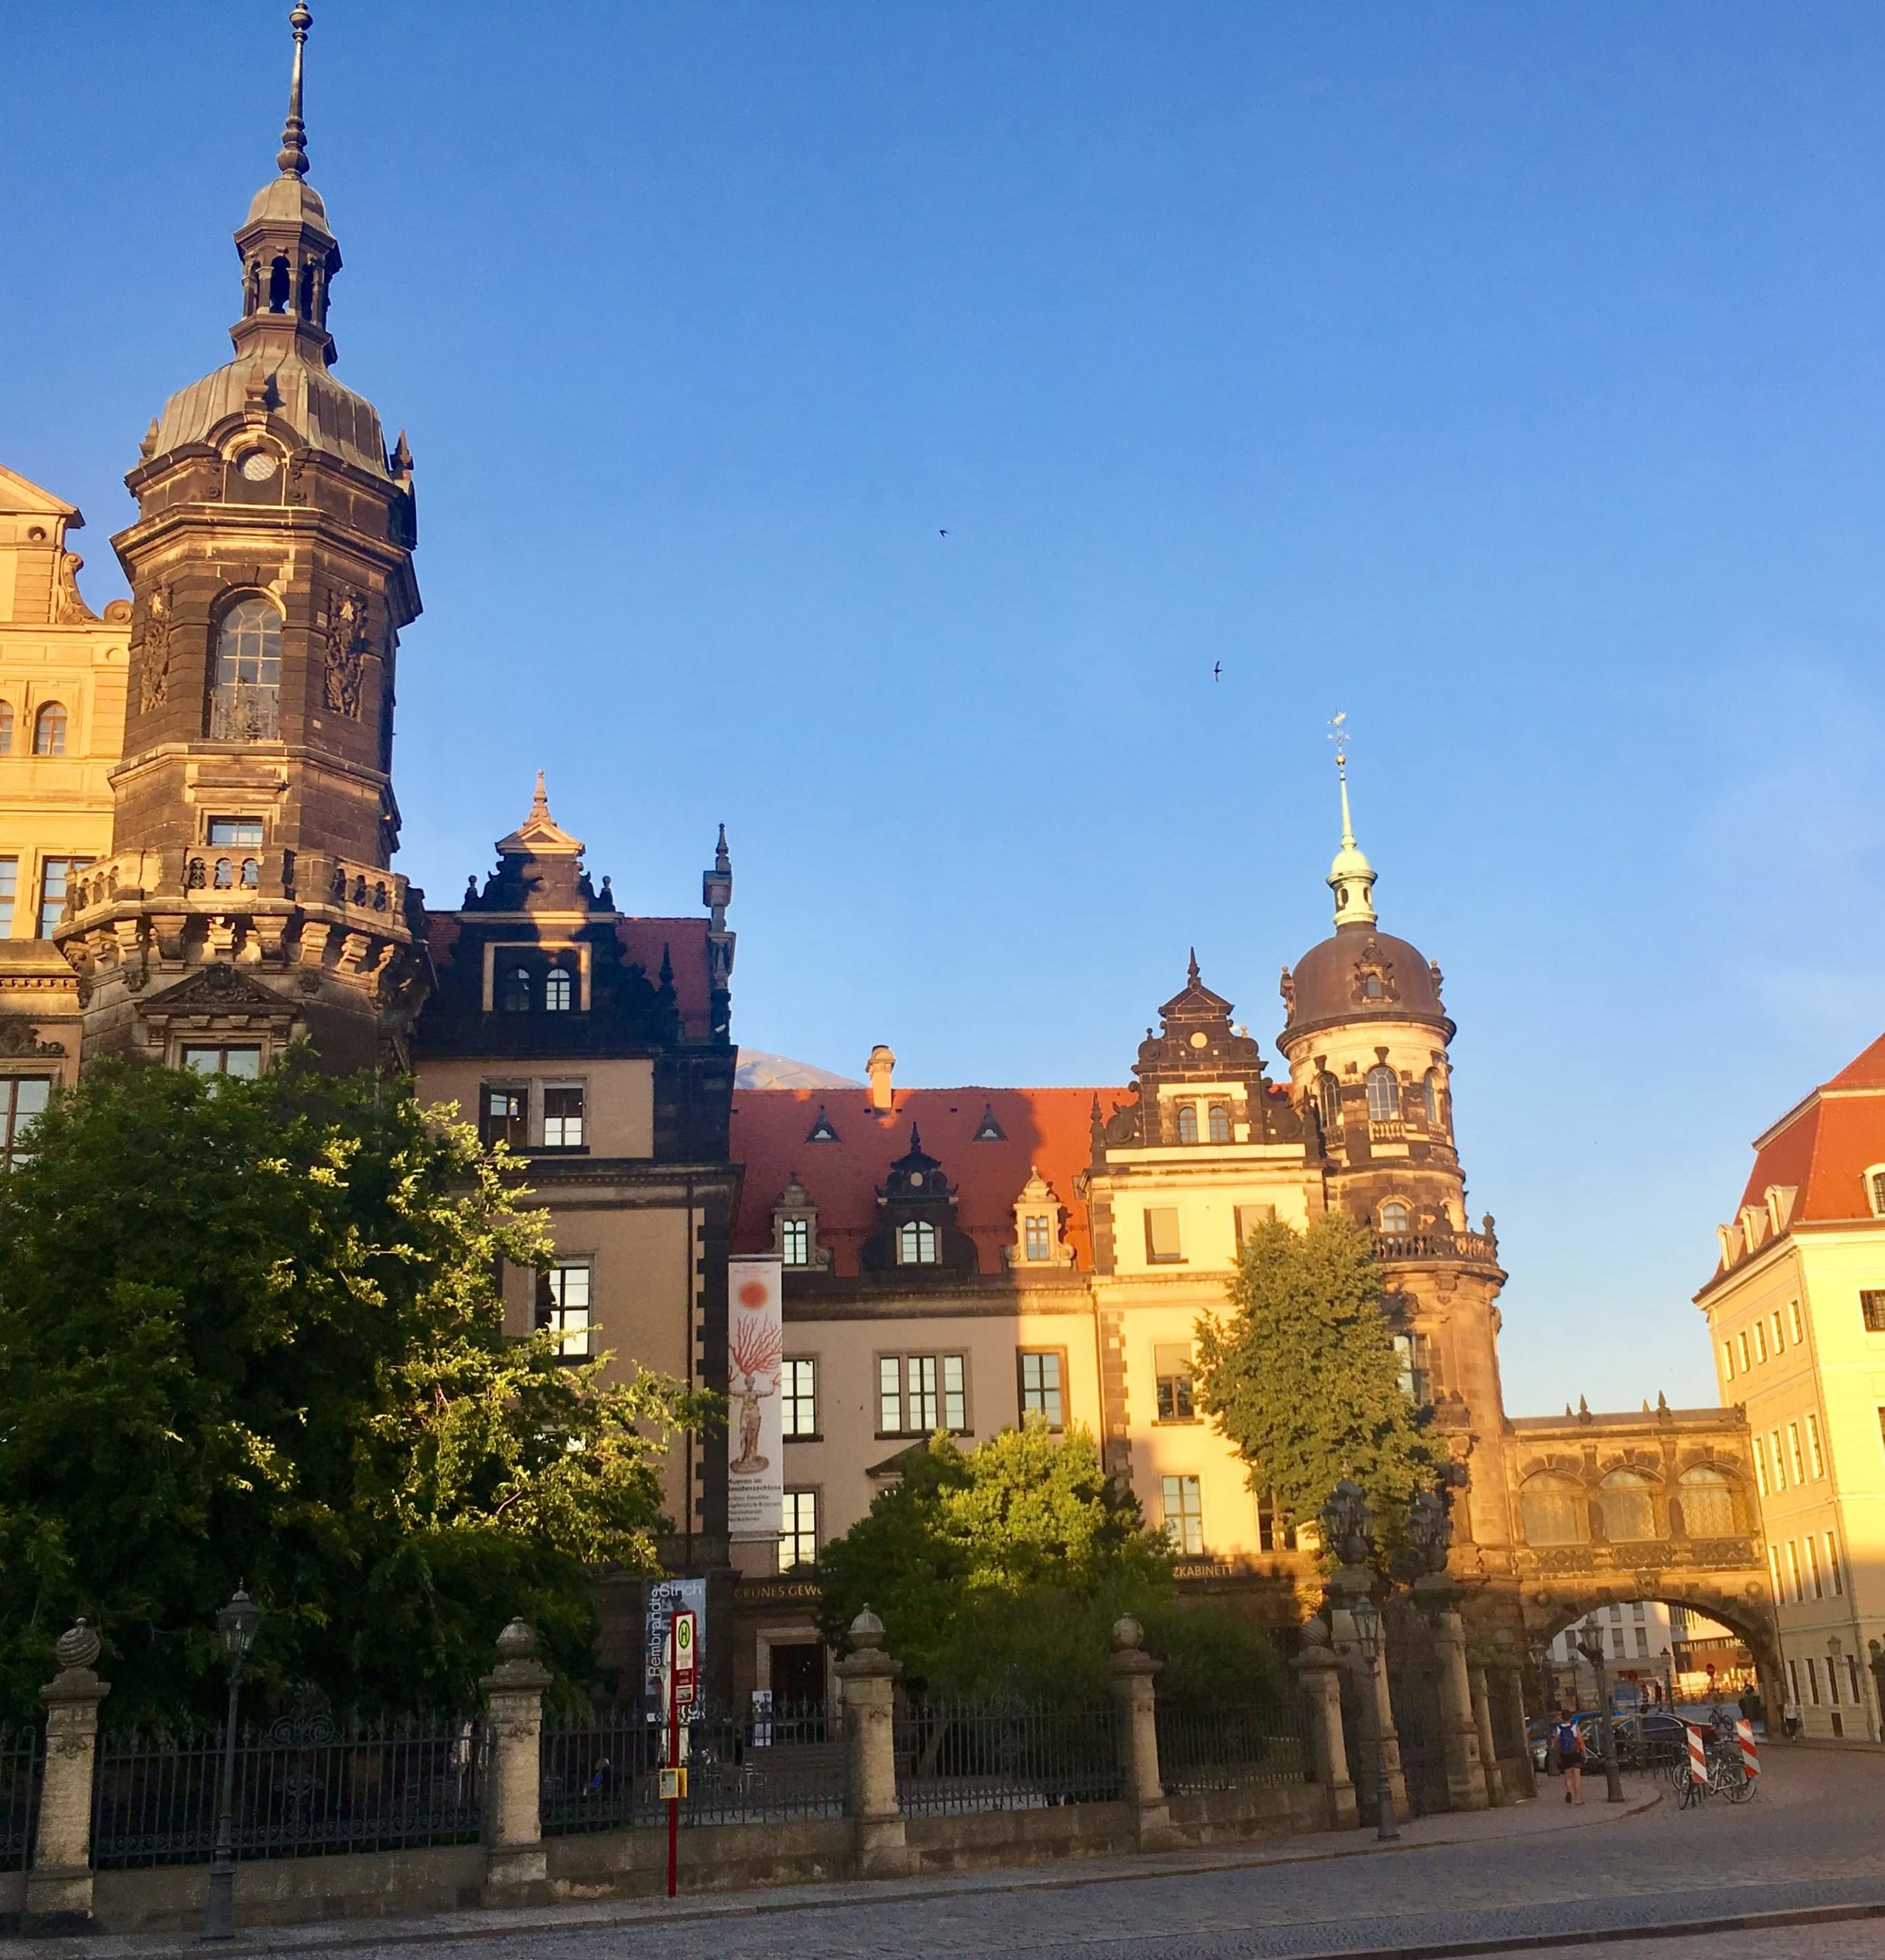 Dresden today: an impressive preservation of its Baroque past